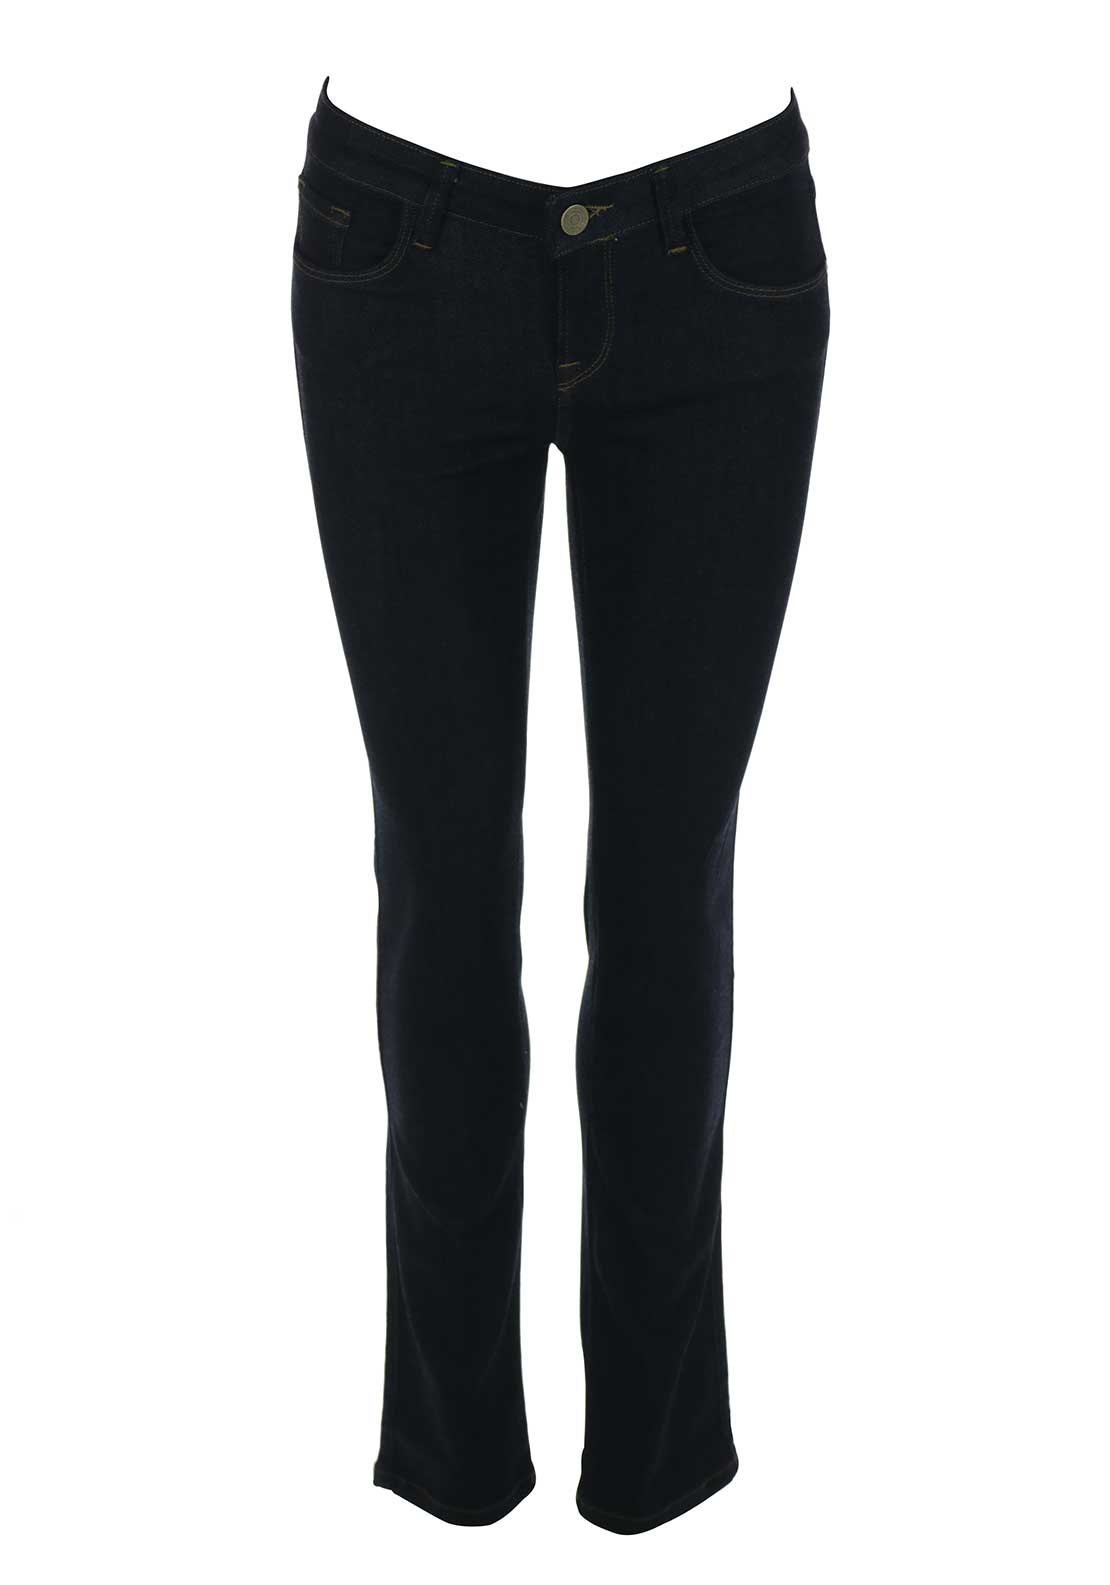 Mos Mosh Athena Straight Leg Jeans, Dark Blue Denim